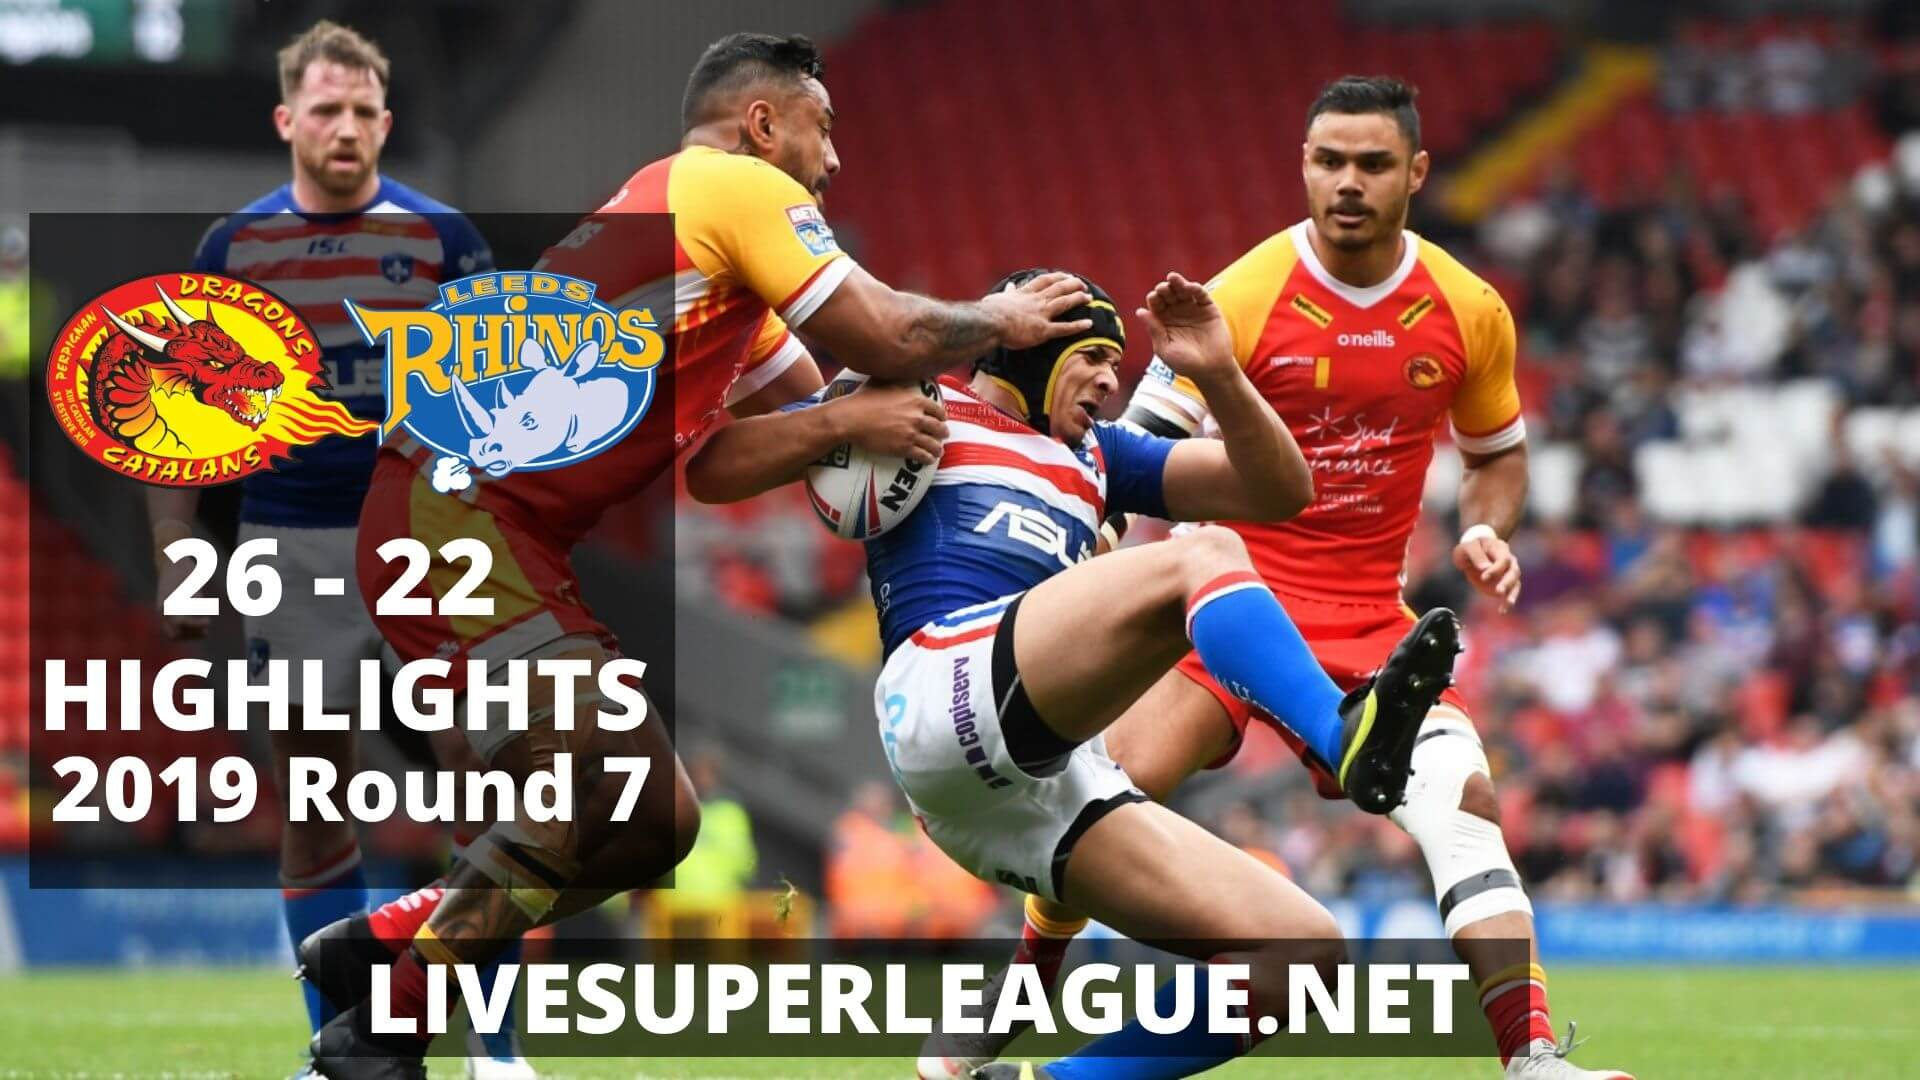 Catalans Dragons vs Leeds Rhinos Highlights 2019 Round 7